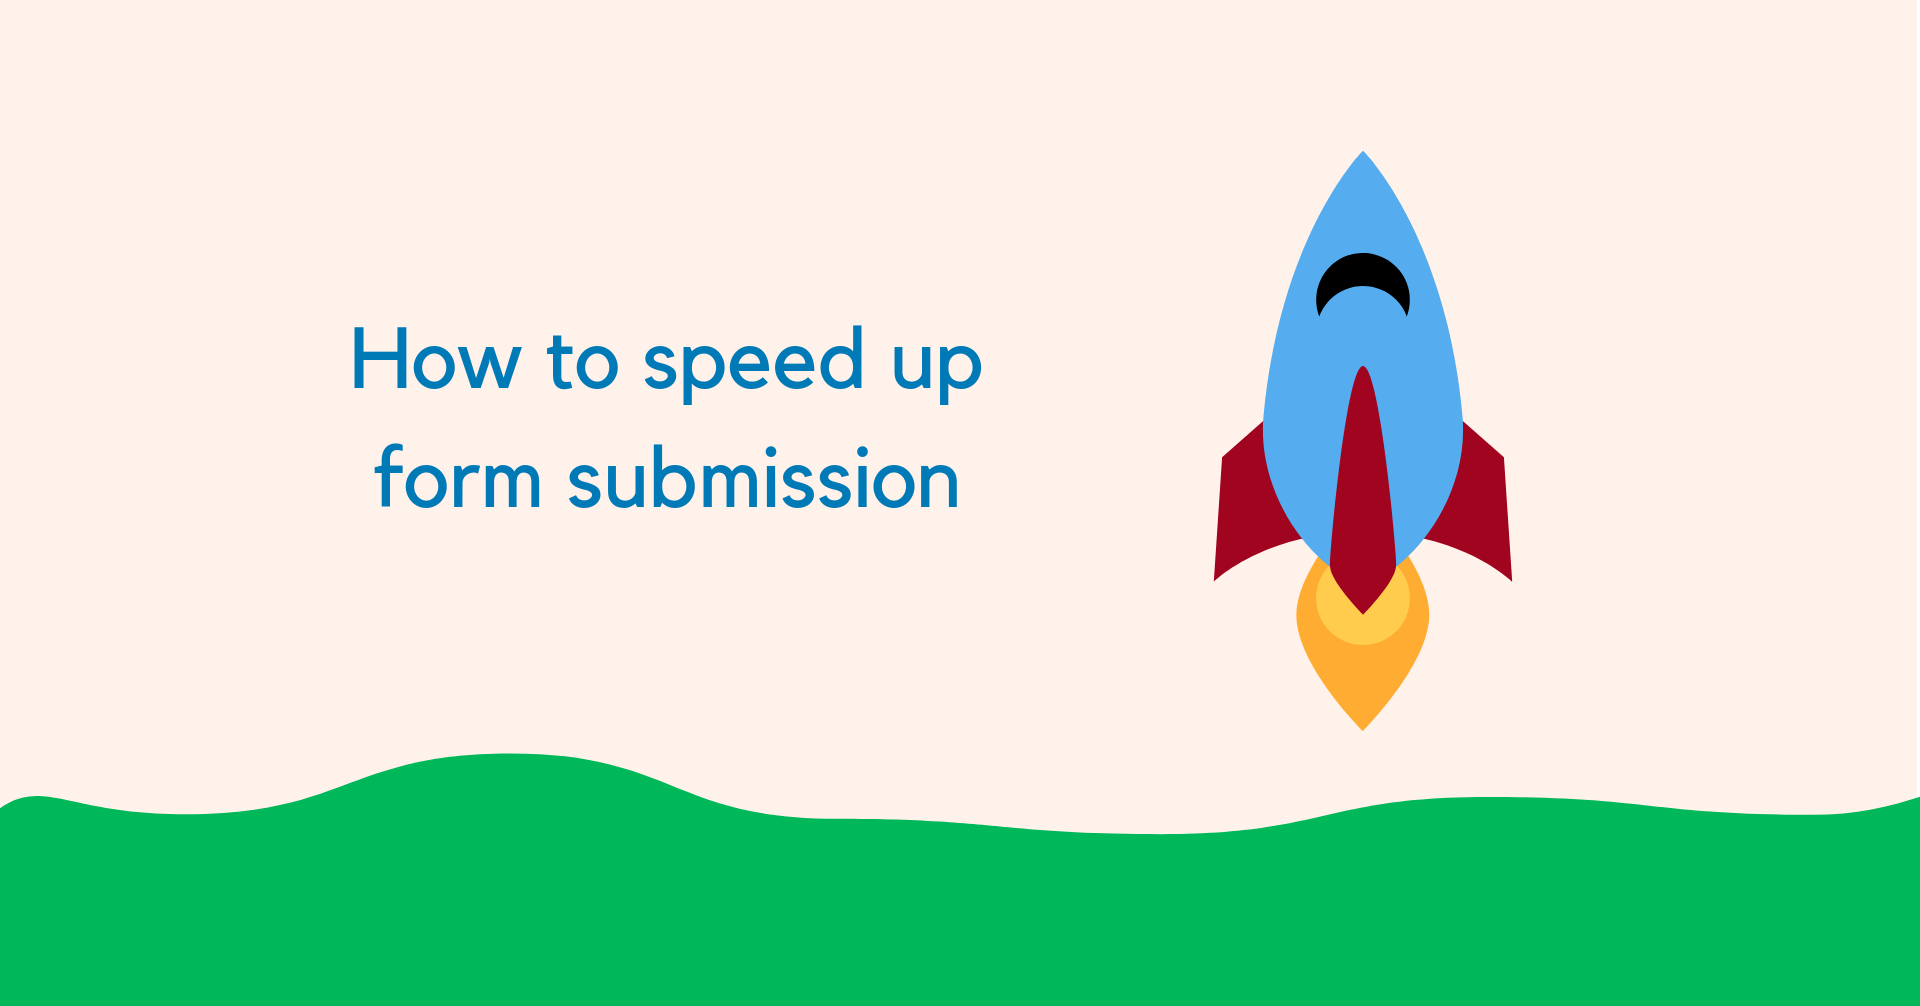 Speed up form submission